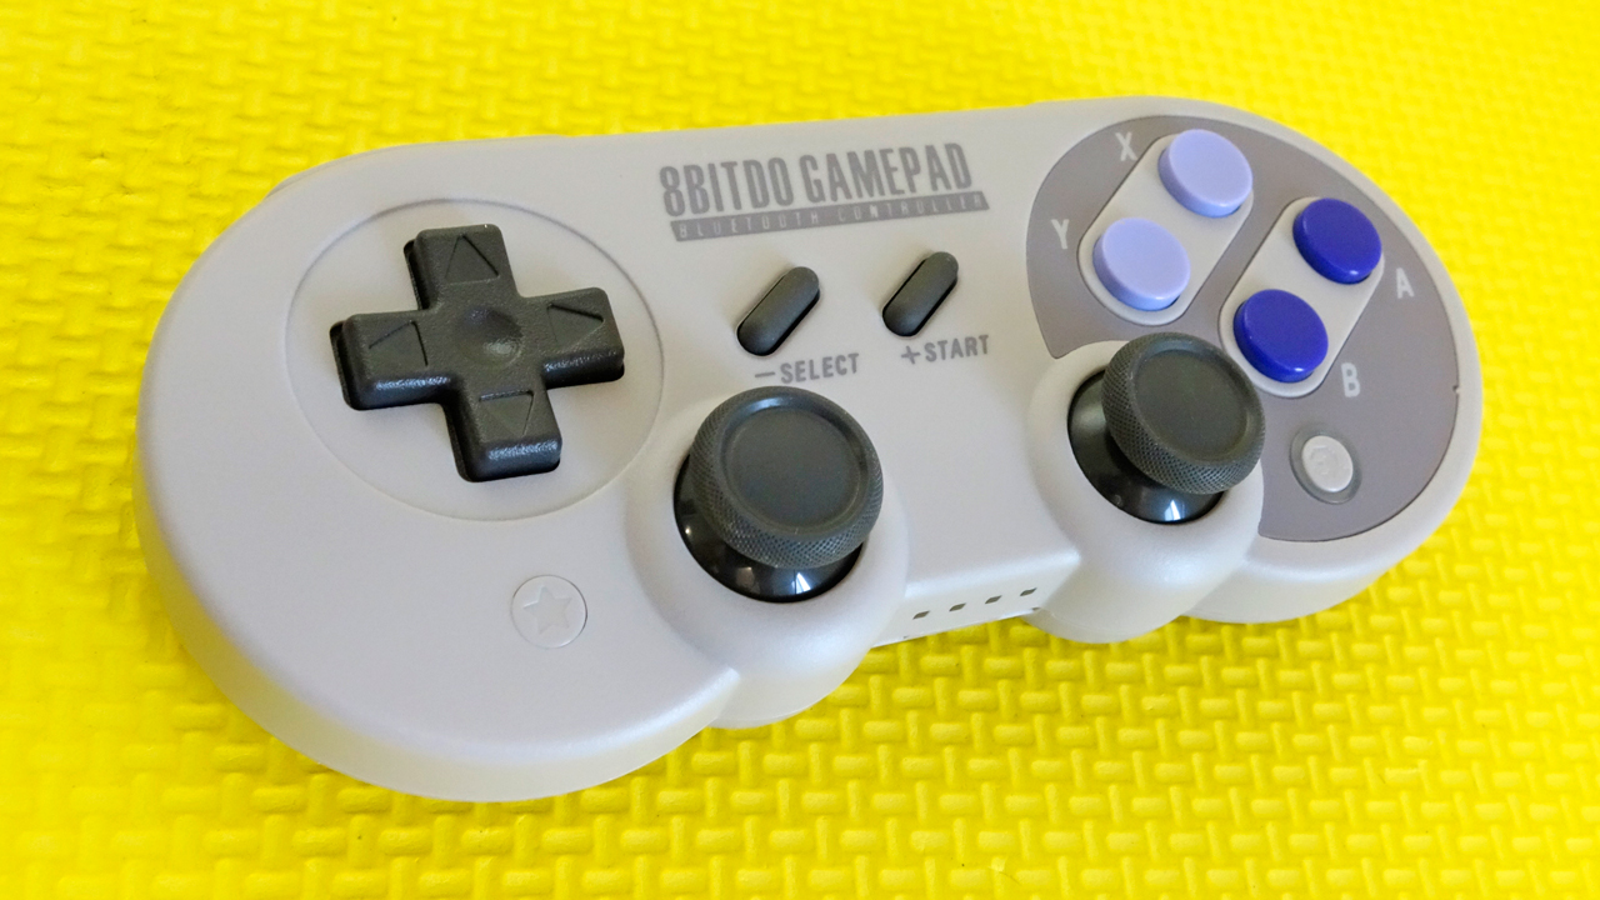 In addition to analog joysticks, the SN30 Pro has a dedicated 'Home' button and a special 'Star' button for activating a button's turbo mode.